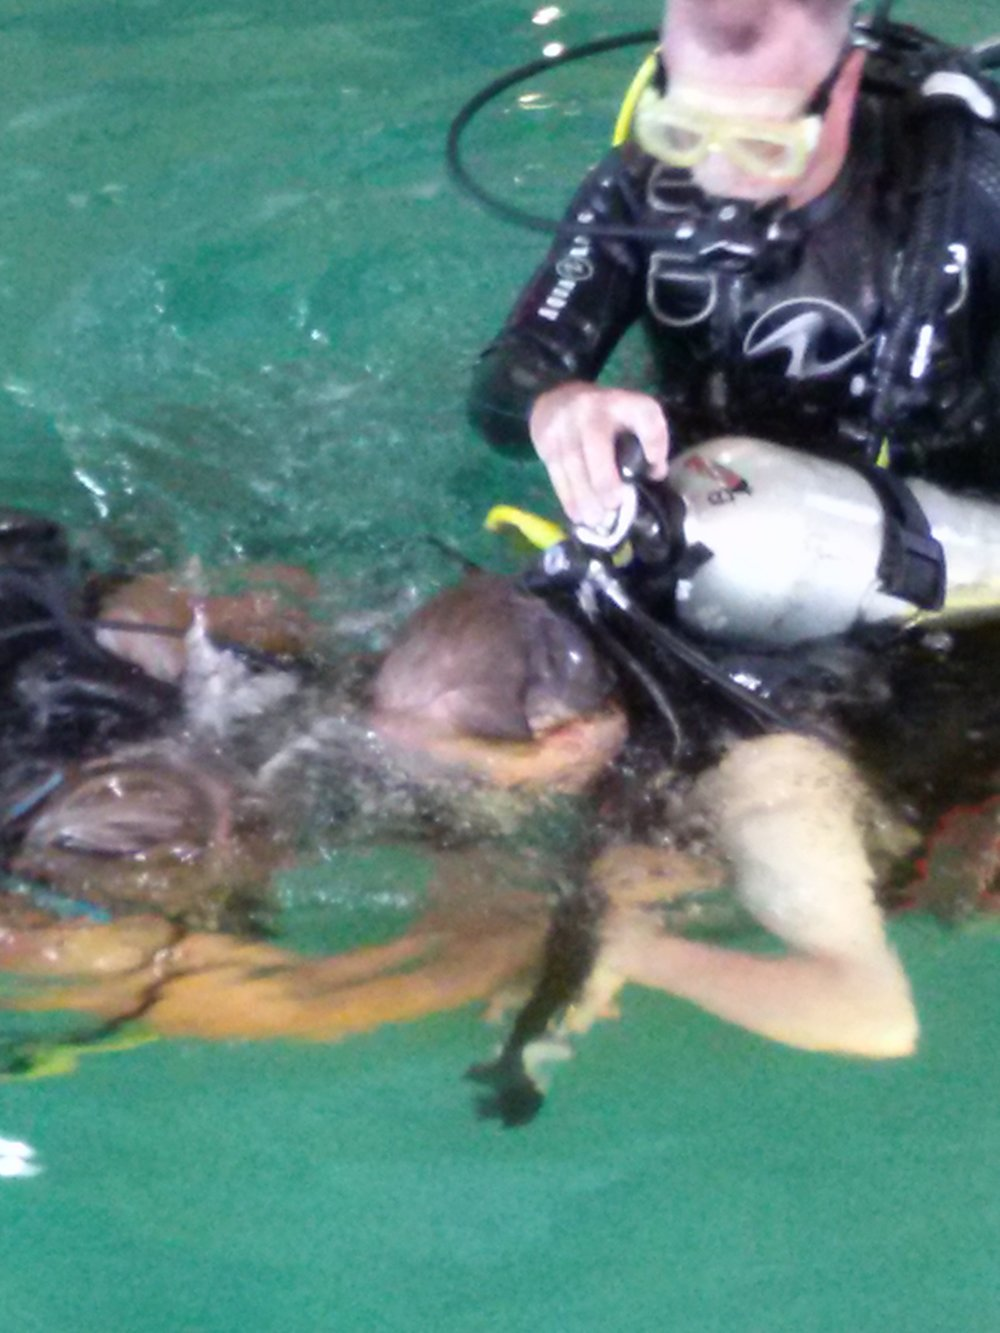 PHOTO: Matthew Going scuba diving.